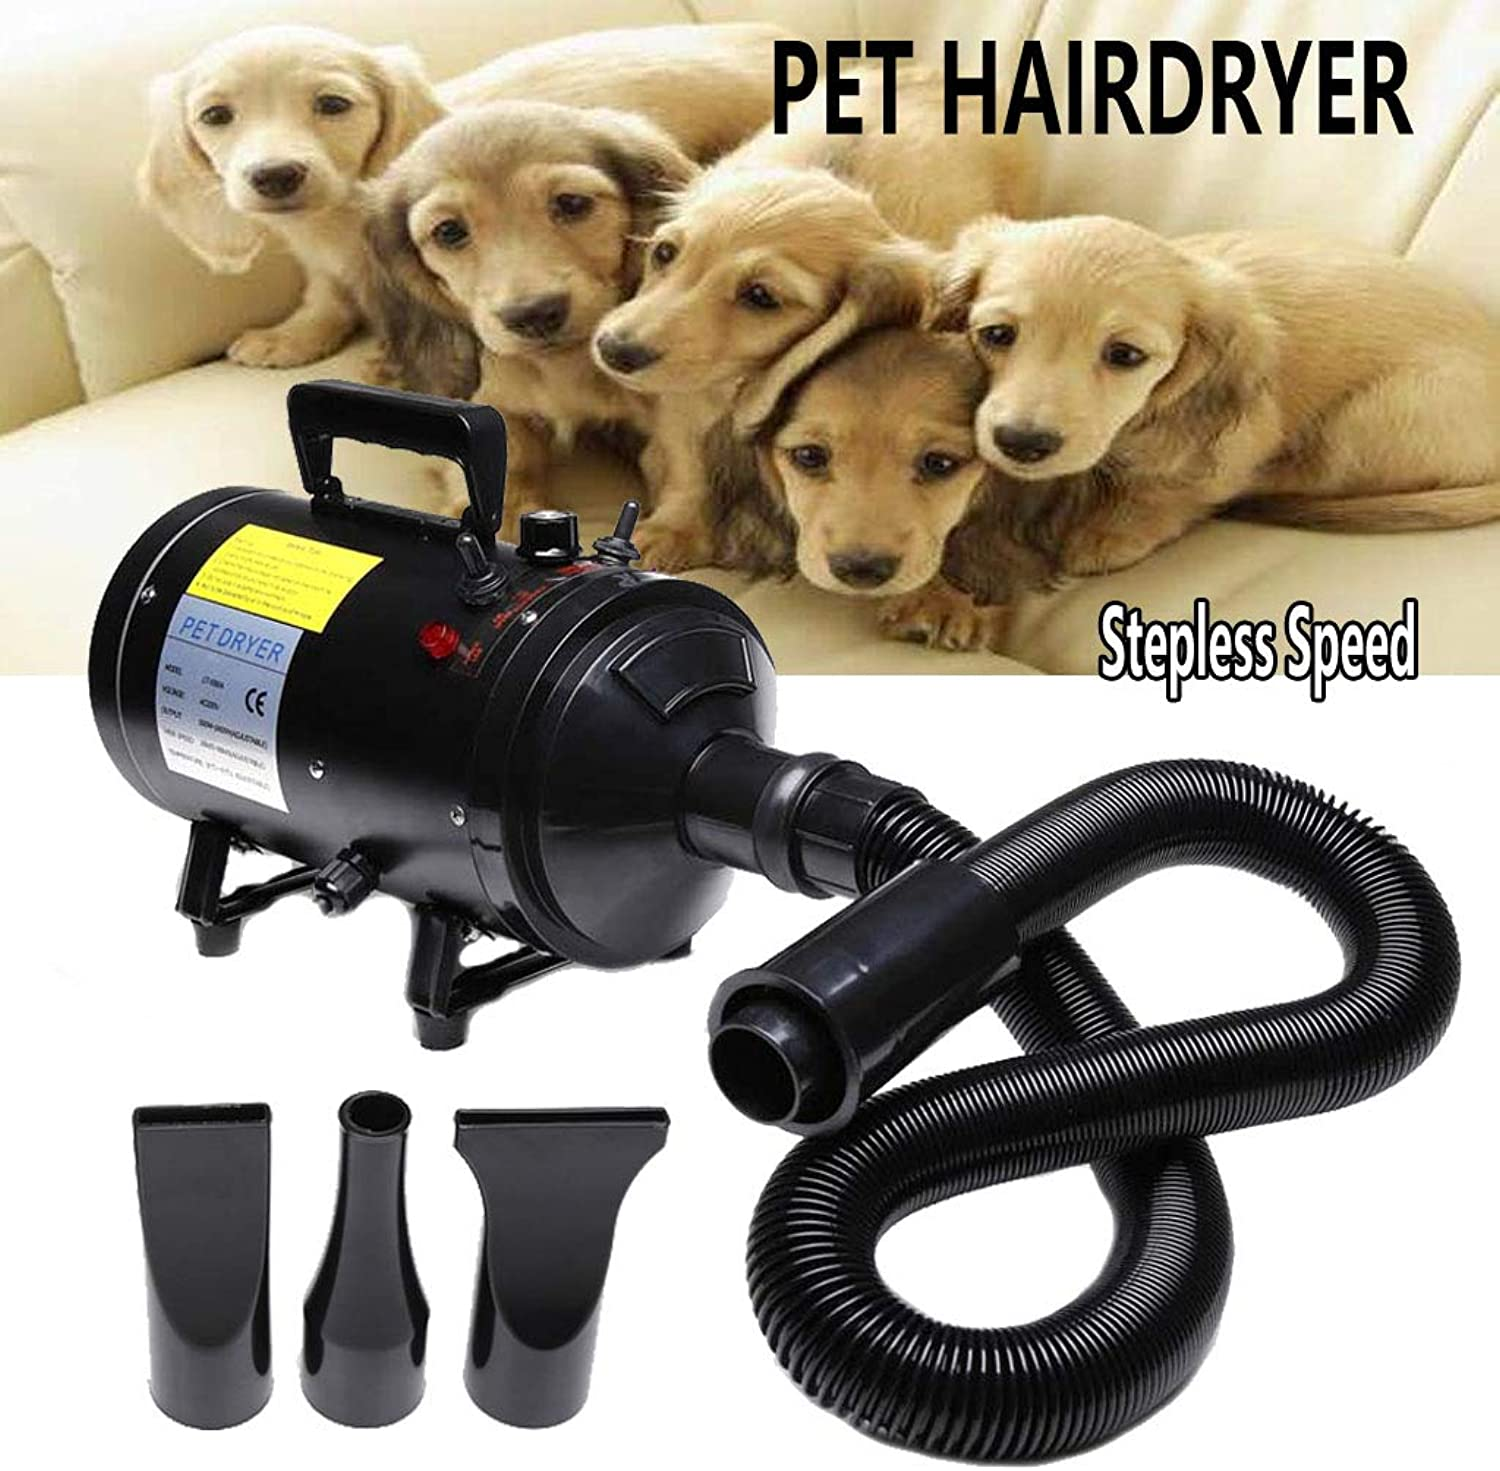 AutoFu 380W2800W Pet Grooming Hair Dryer Black Blaster Dryer with Stand for Dog Cat Car  Low Noise Stepless Speed Blower Heater Pet Bathing Accessories